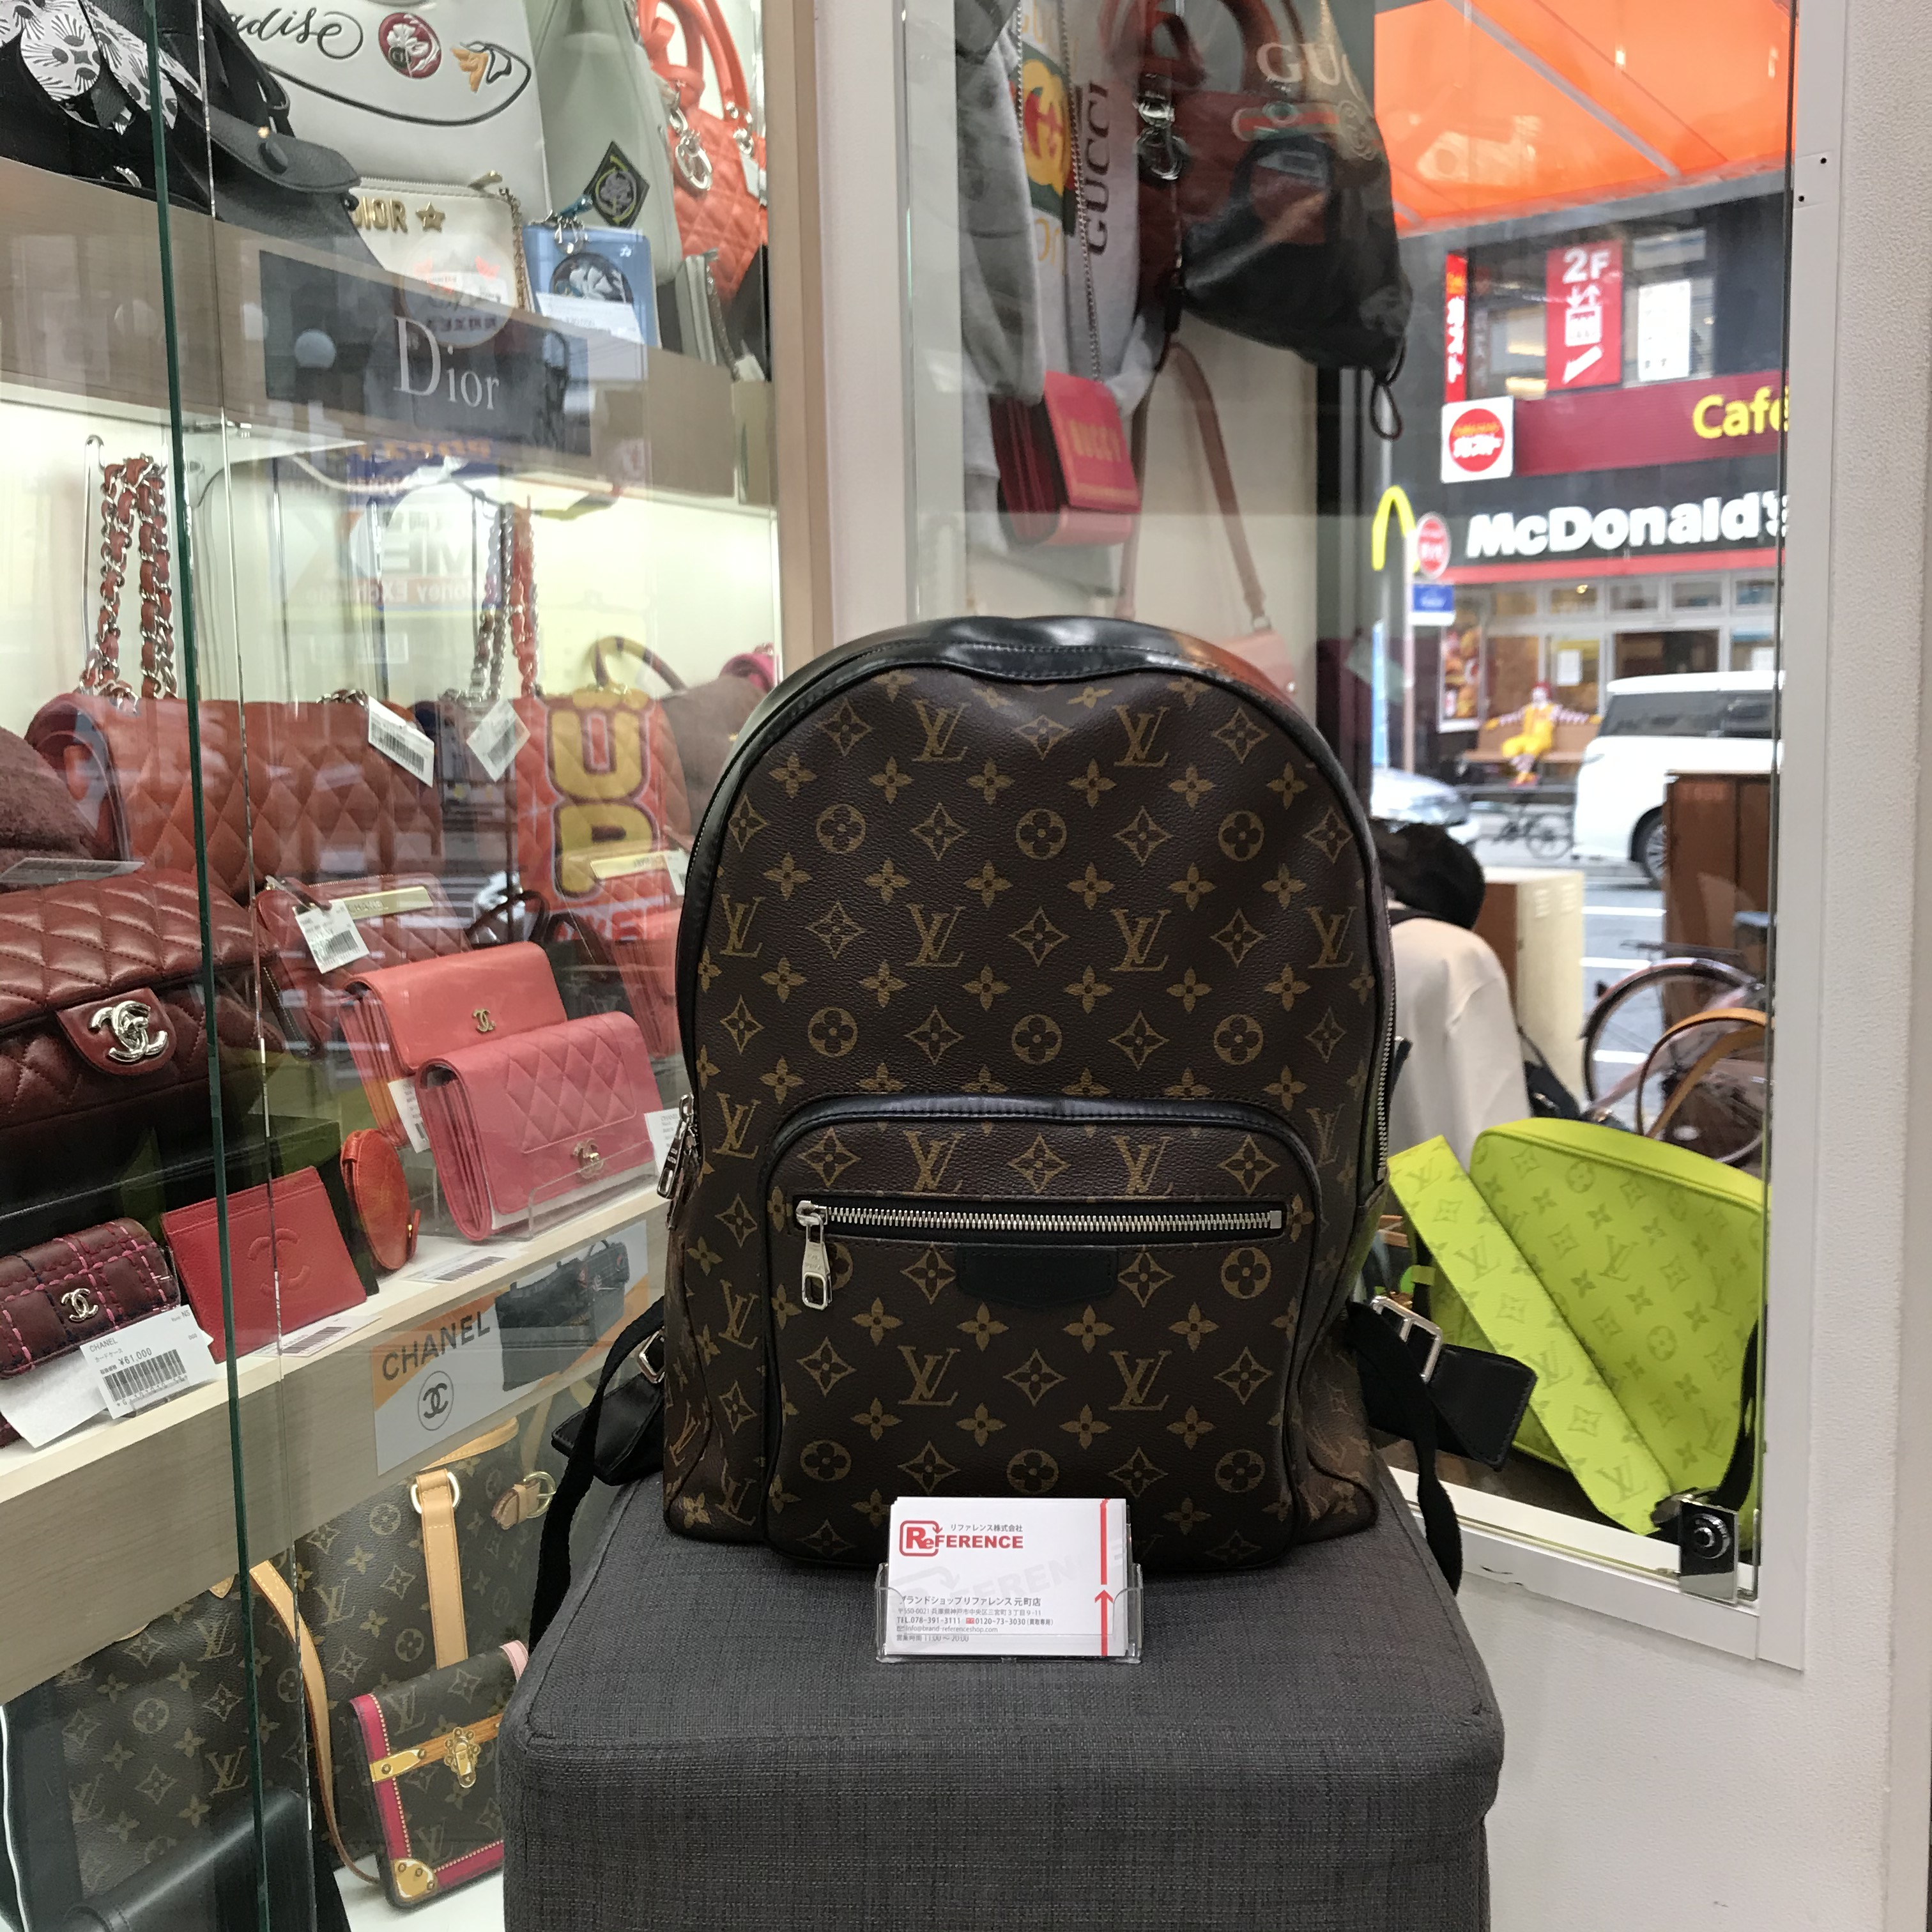 Louis Vuitton✨ルイヴィトンのリュックサック(型番M41530)を高価買取🎵